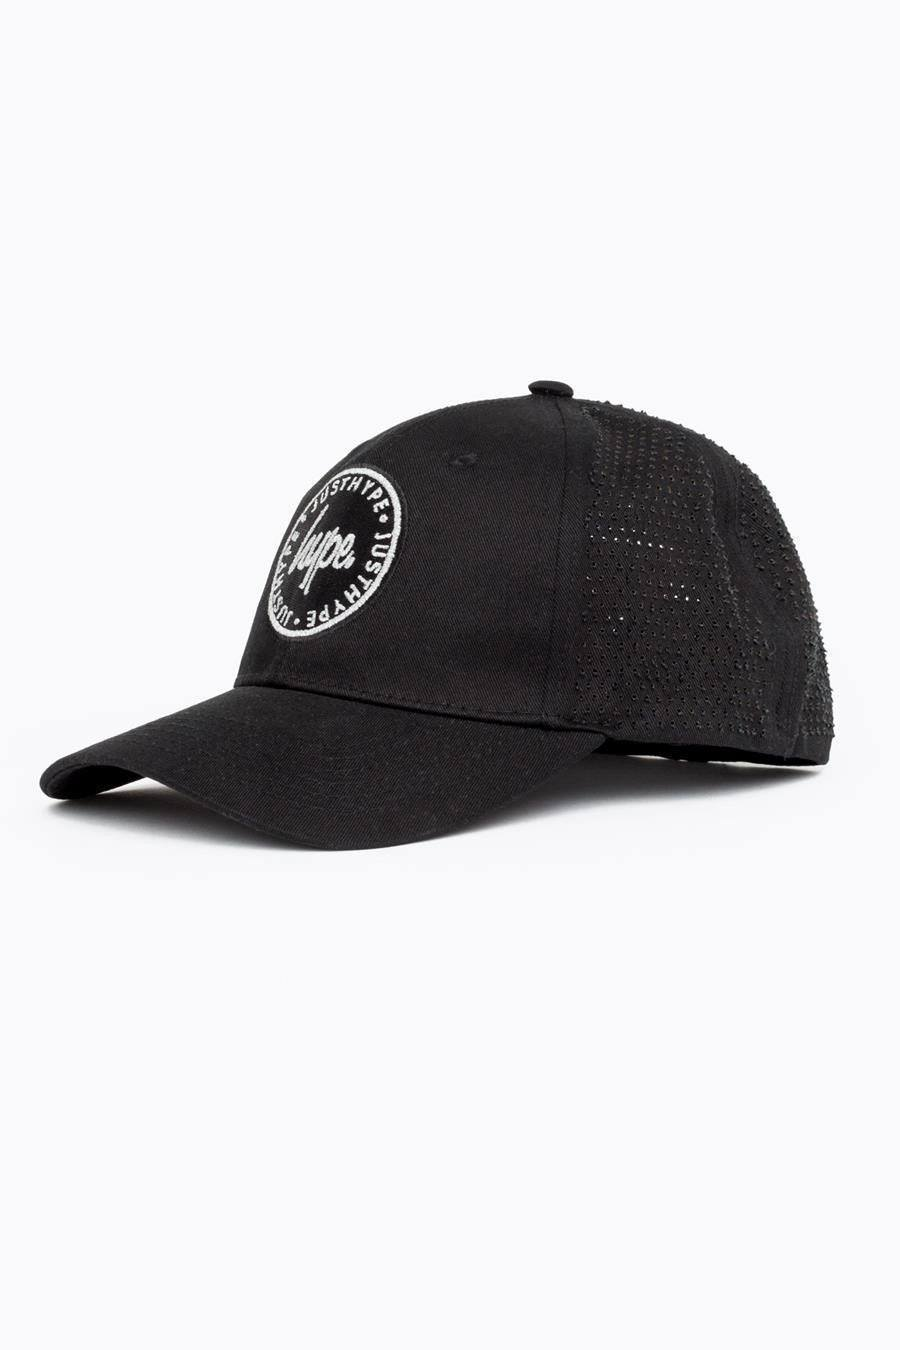 HYPE Black Laser Polka Dad Hat